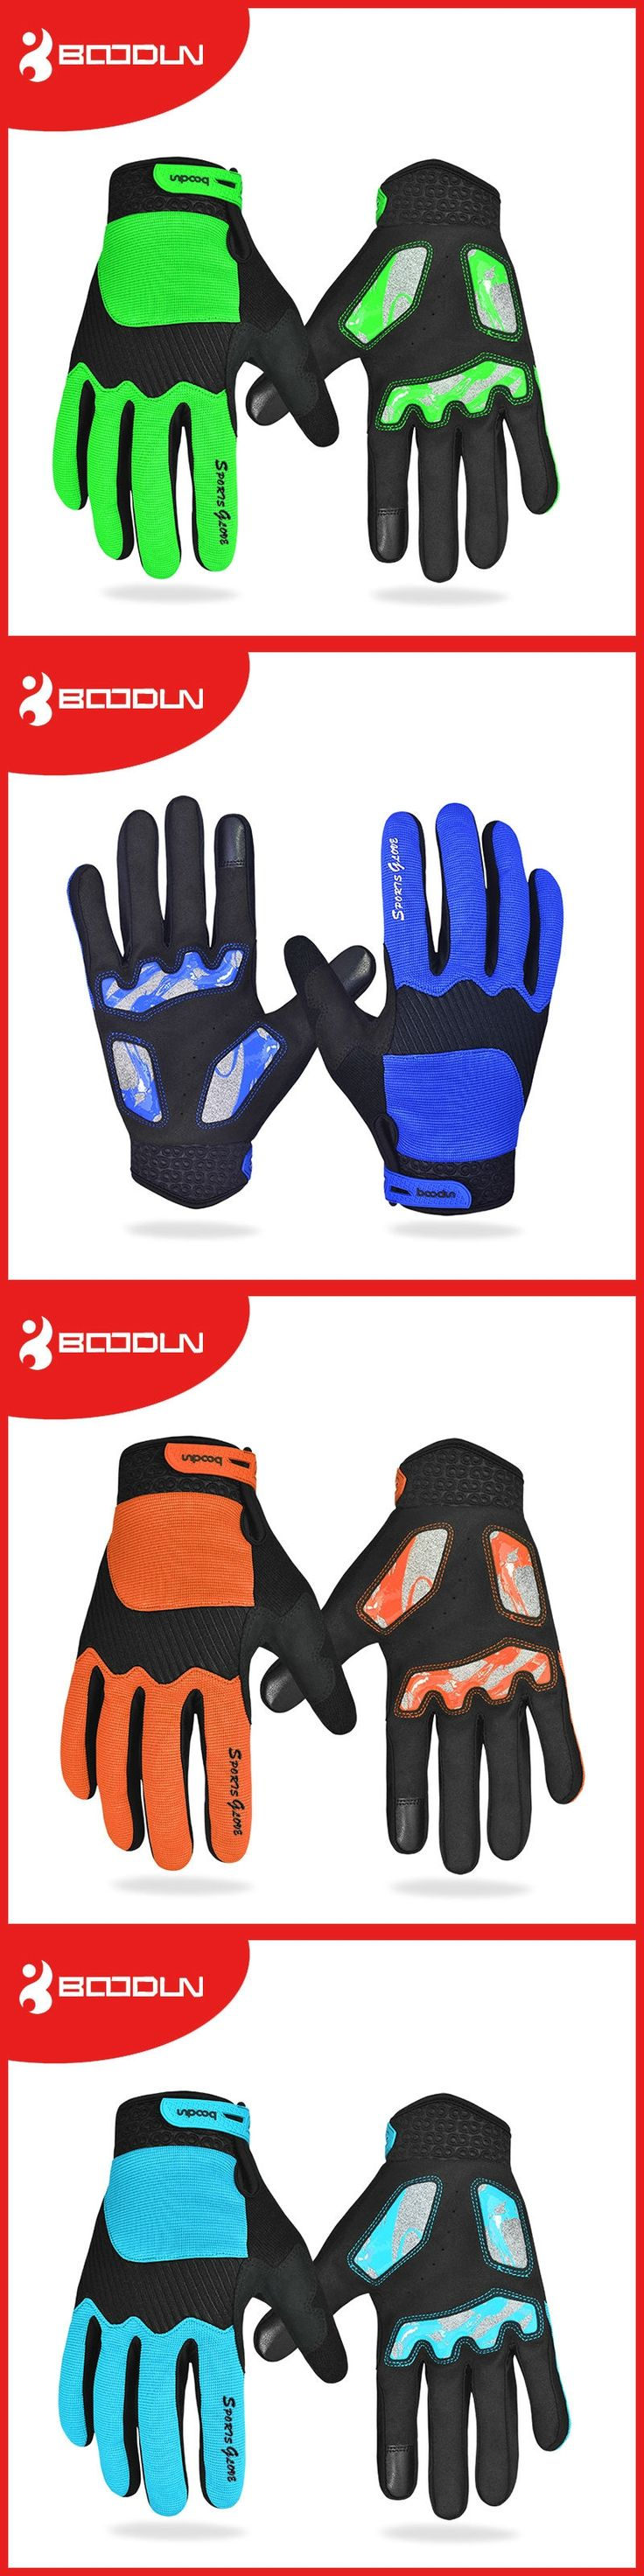 Boodun Winter Full Finger Cycling Gloves Waterproof Windproof Gloves Winter Bicycle Thermal Guantes Ciclismo Bicicleta